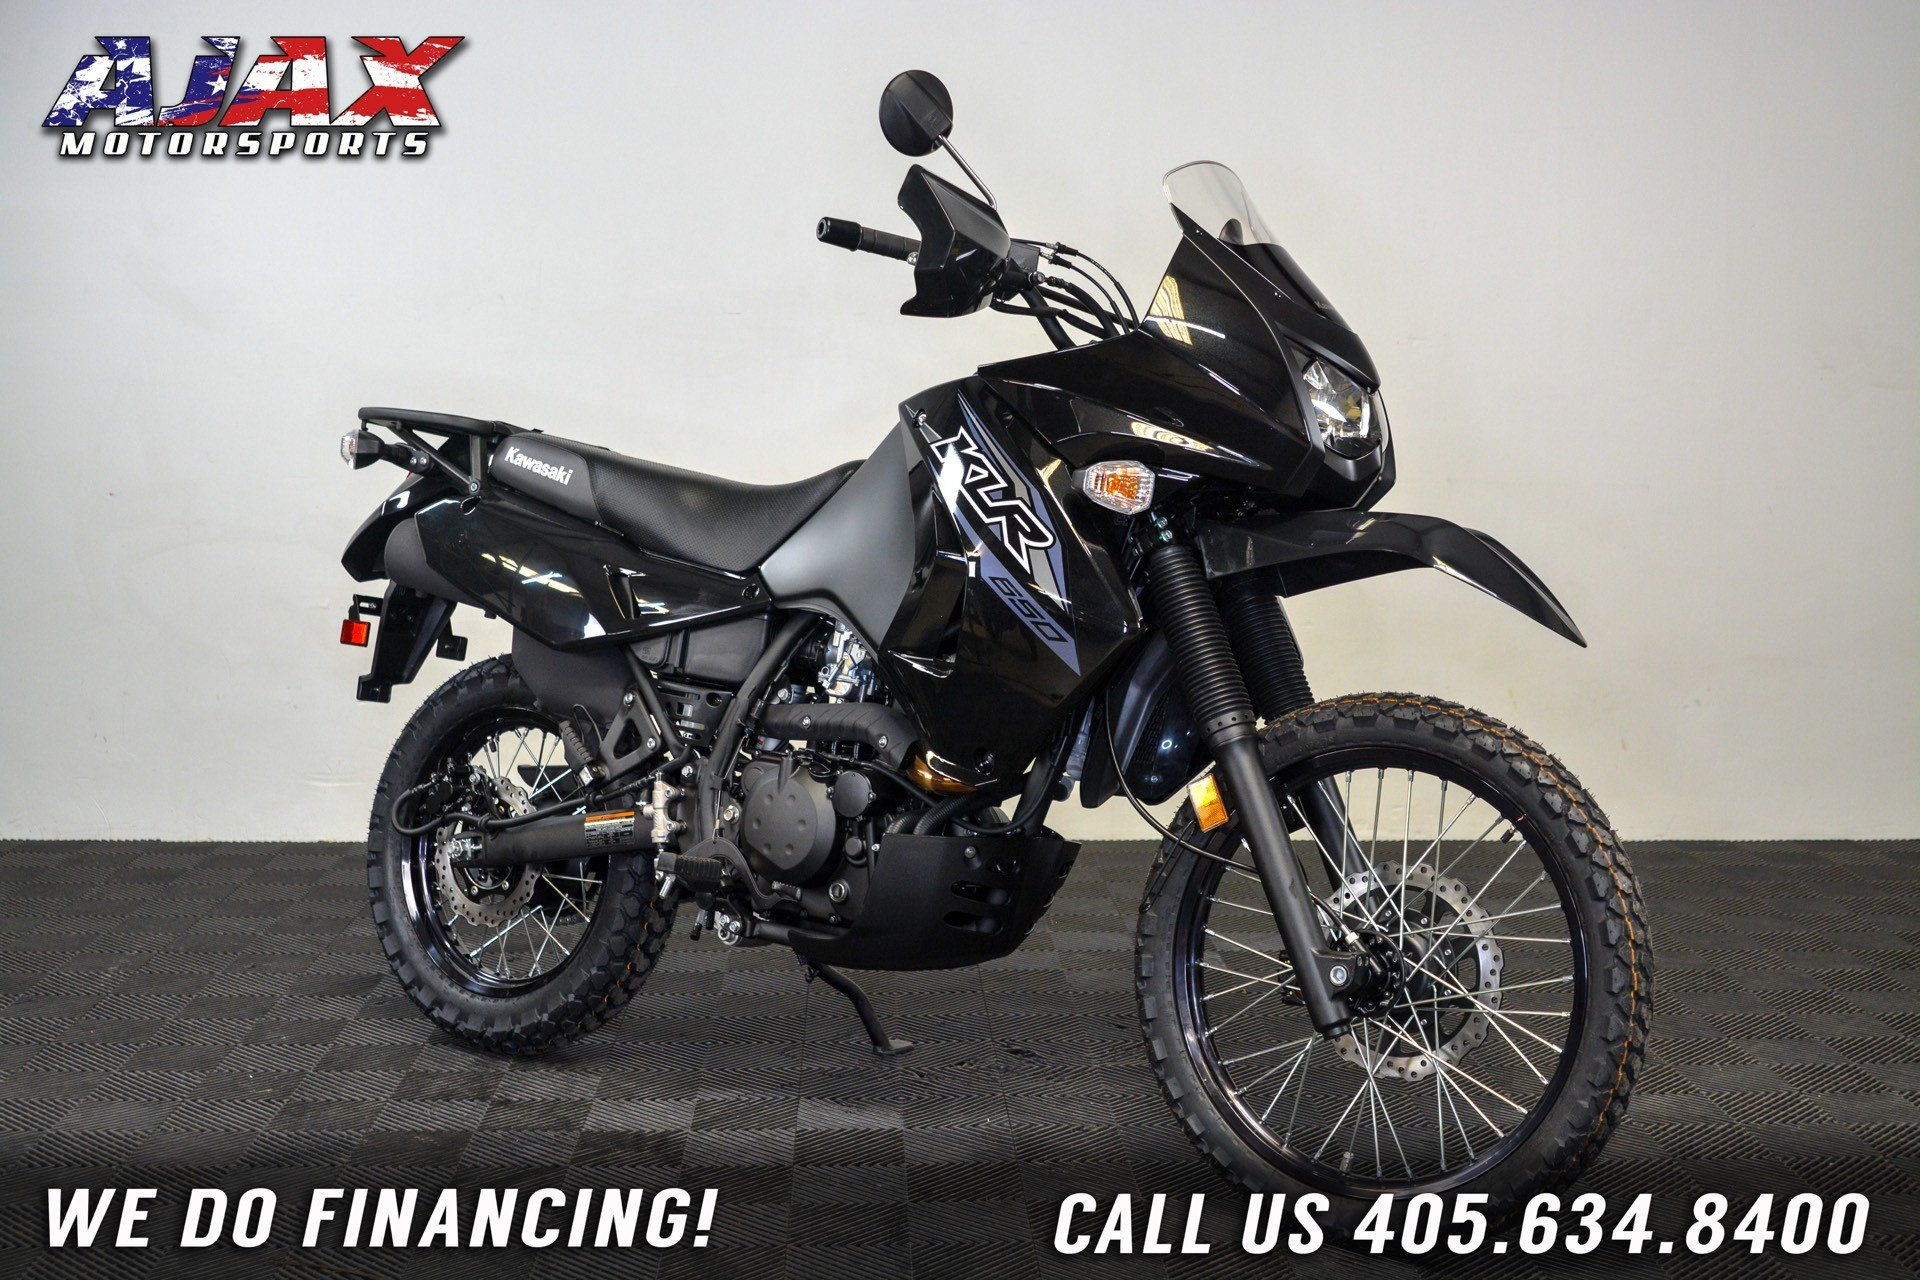 2018 Kawasaki KLR 650 for sale 1773